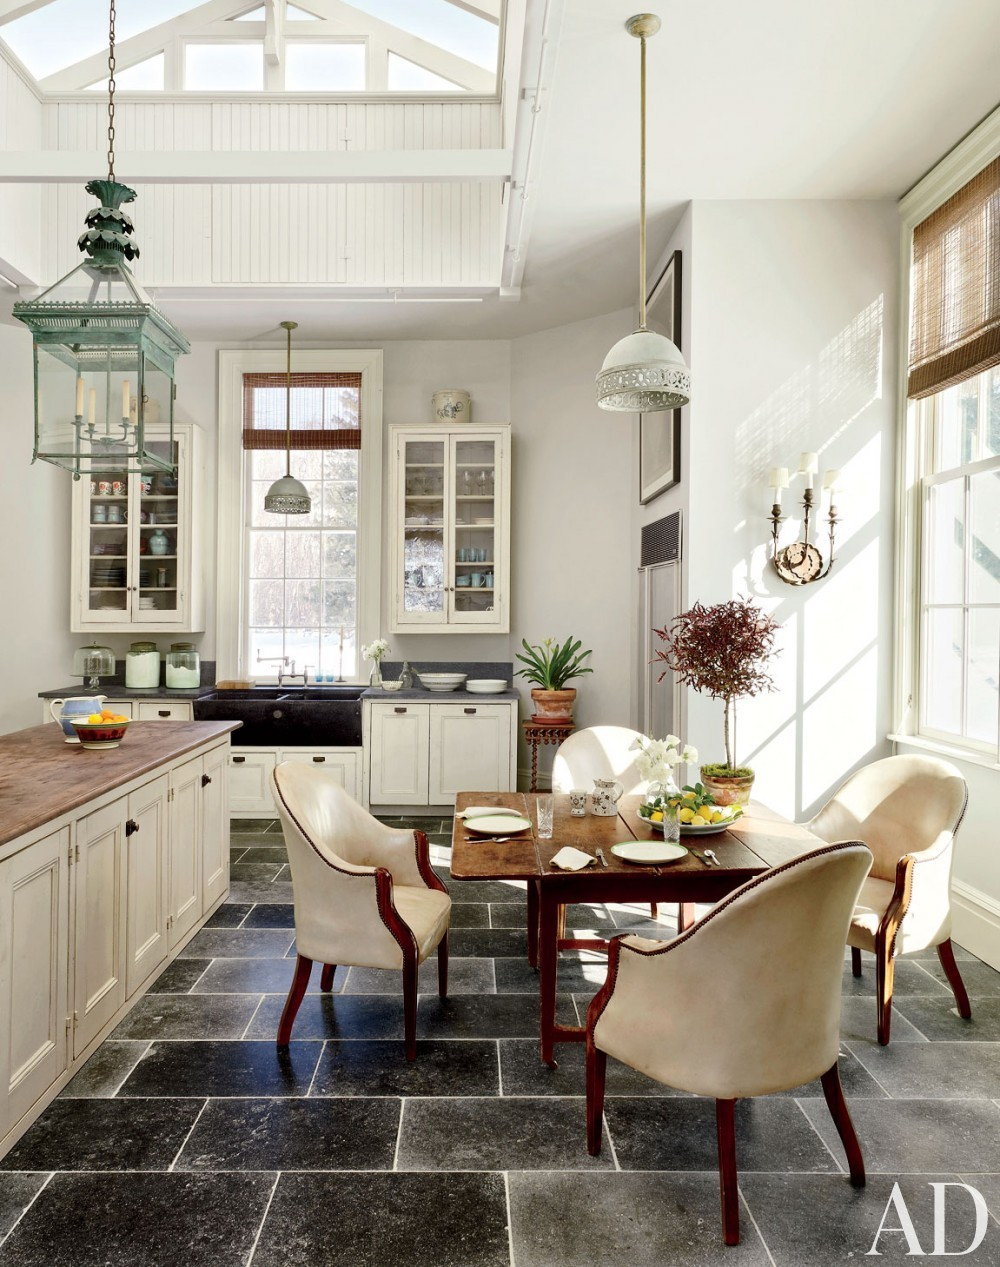 Traditional Kitchen by Hottenroth + Joseph Architects and Hottenroth + Joseph Architects in Livingston, New York